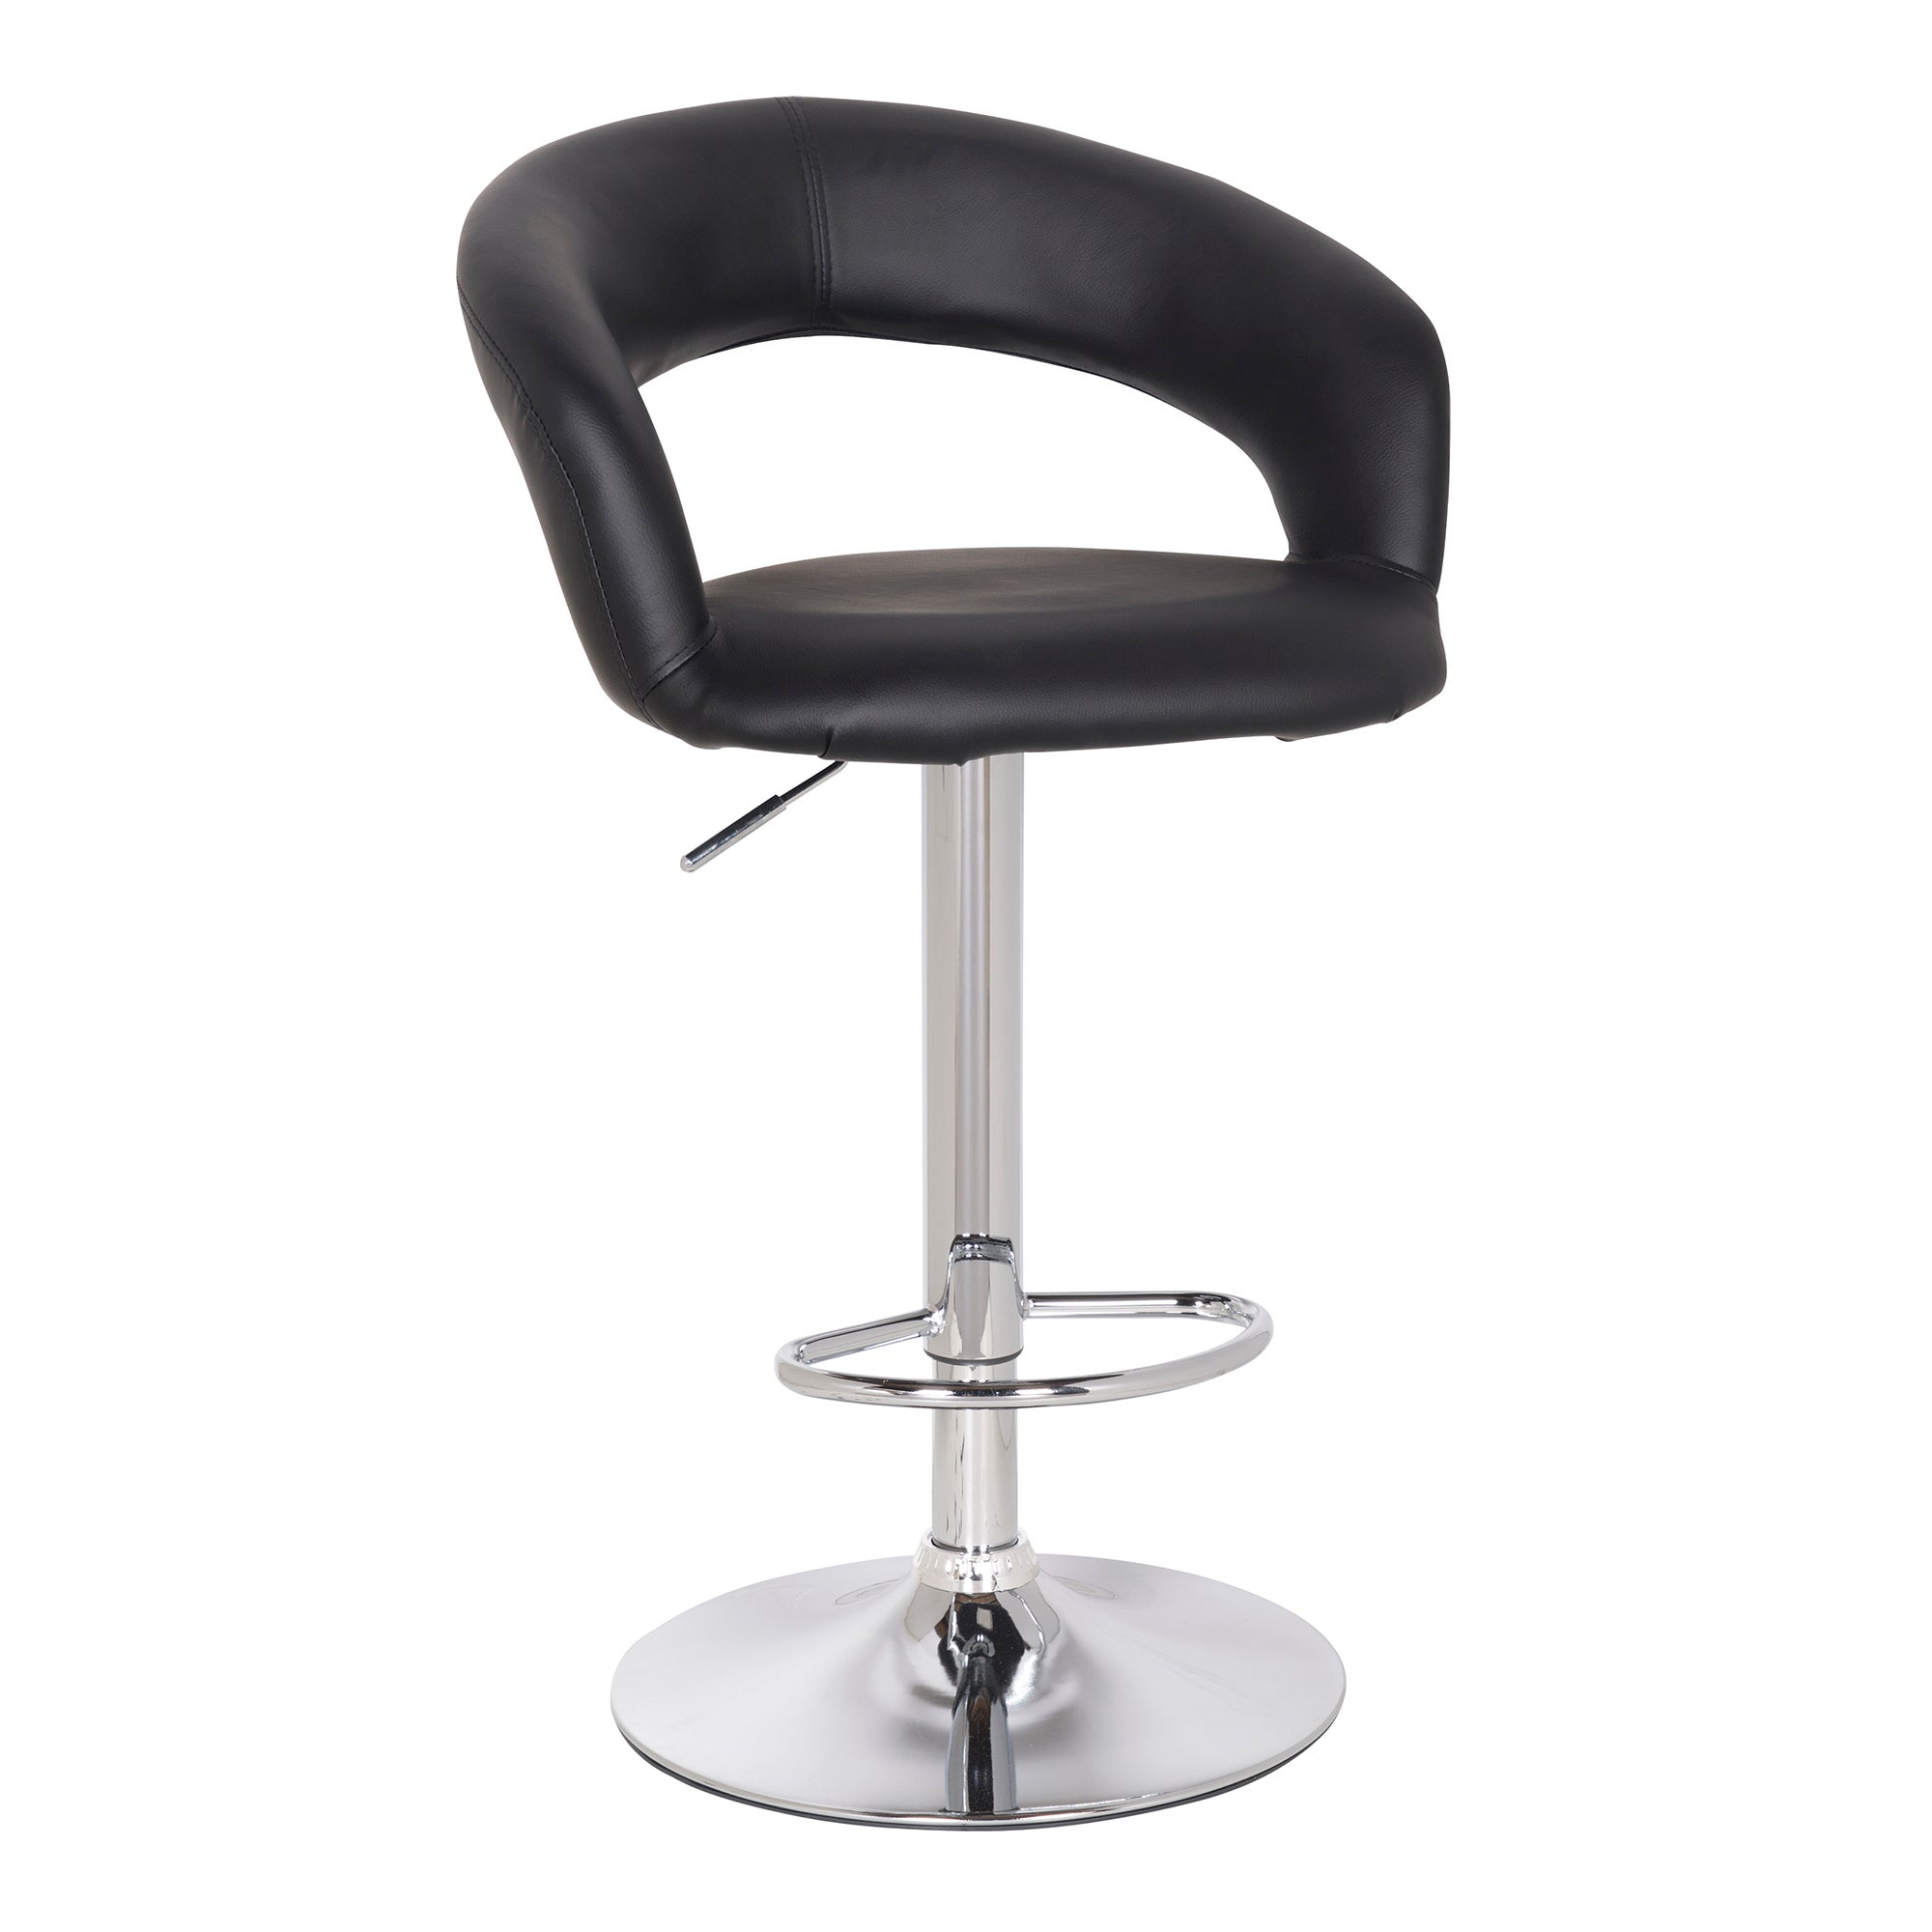 Lunar Upholstered Gas Lift Bar Stool